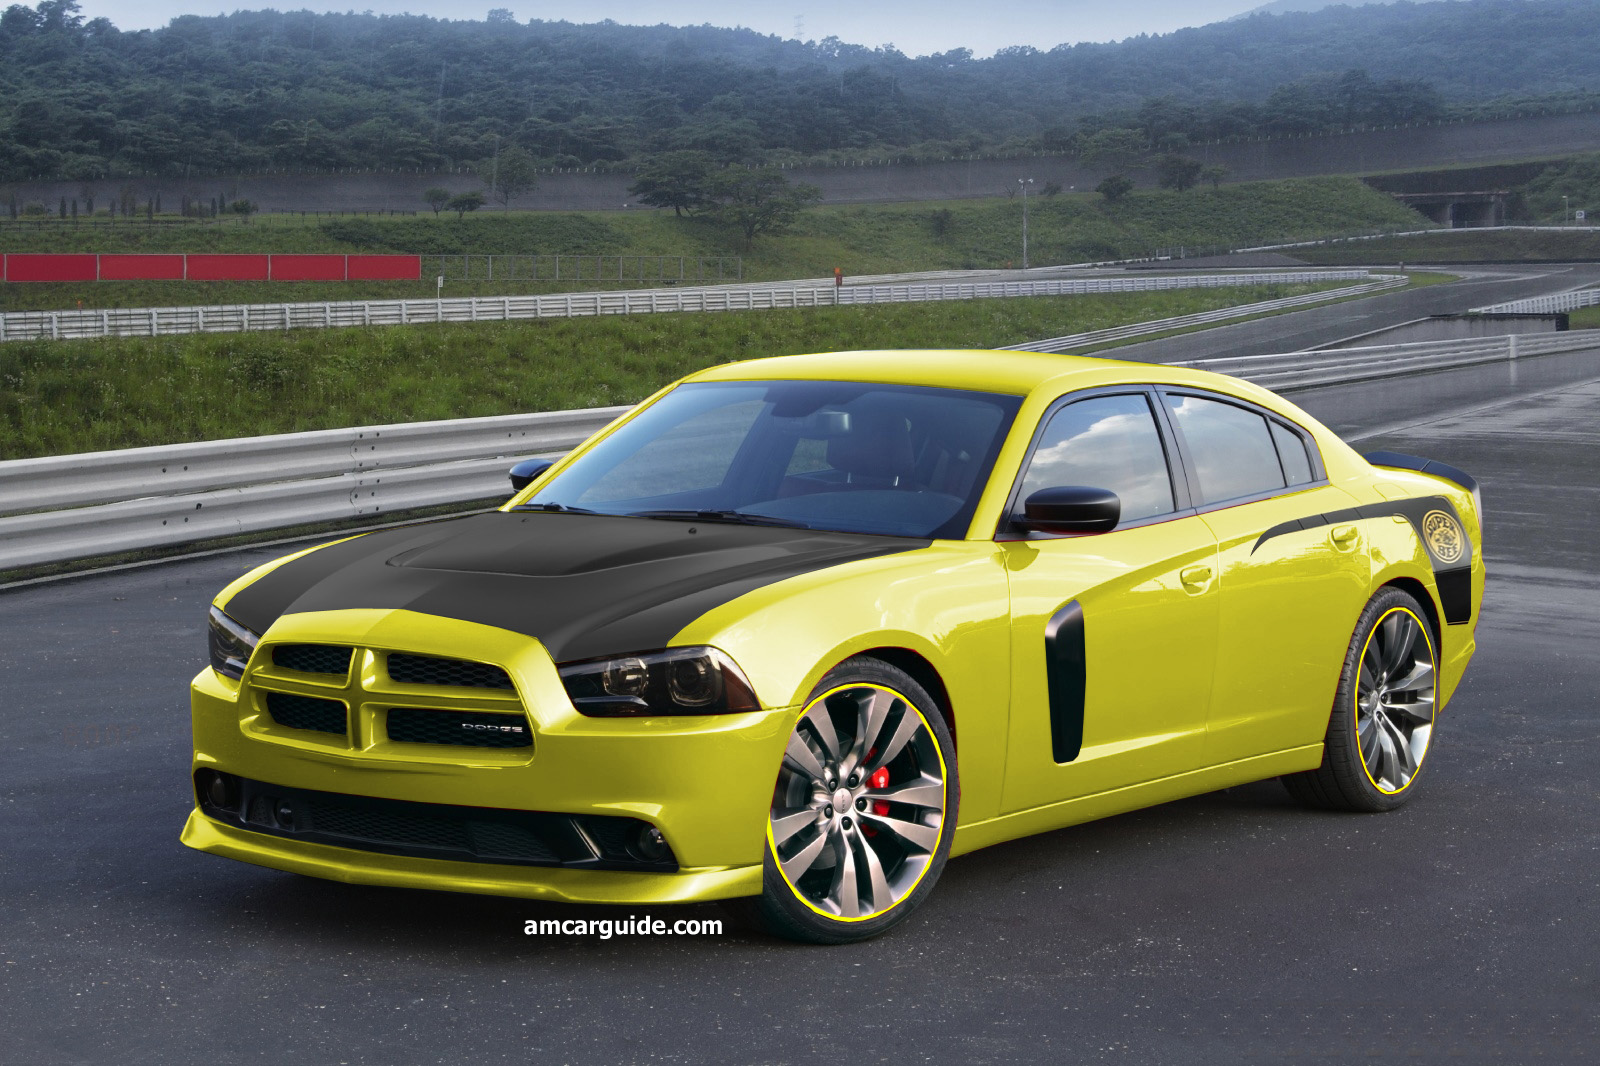 2012 dodge charger rt review 2018 dodge reviews. Black Bedroom Furniture Sets. Home Design Ideas